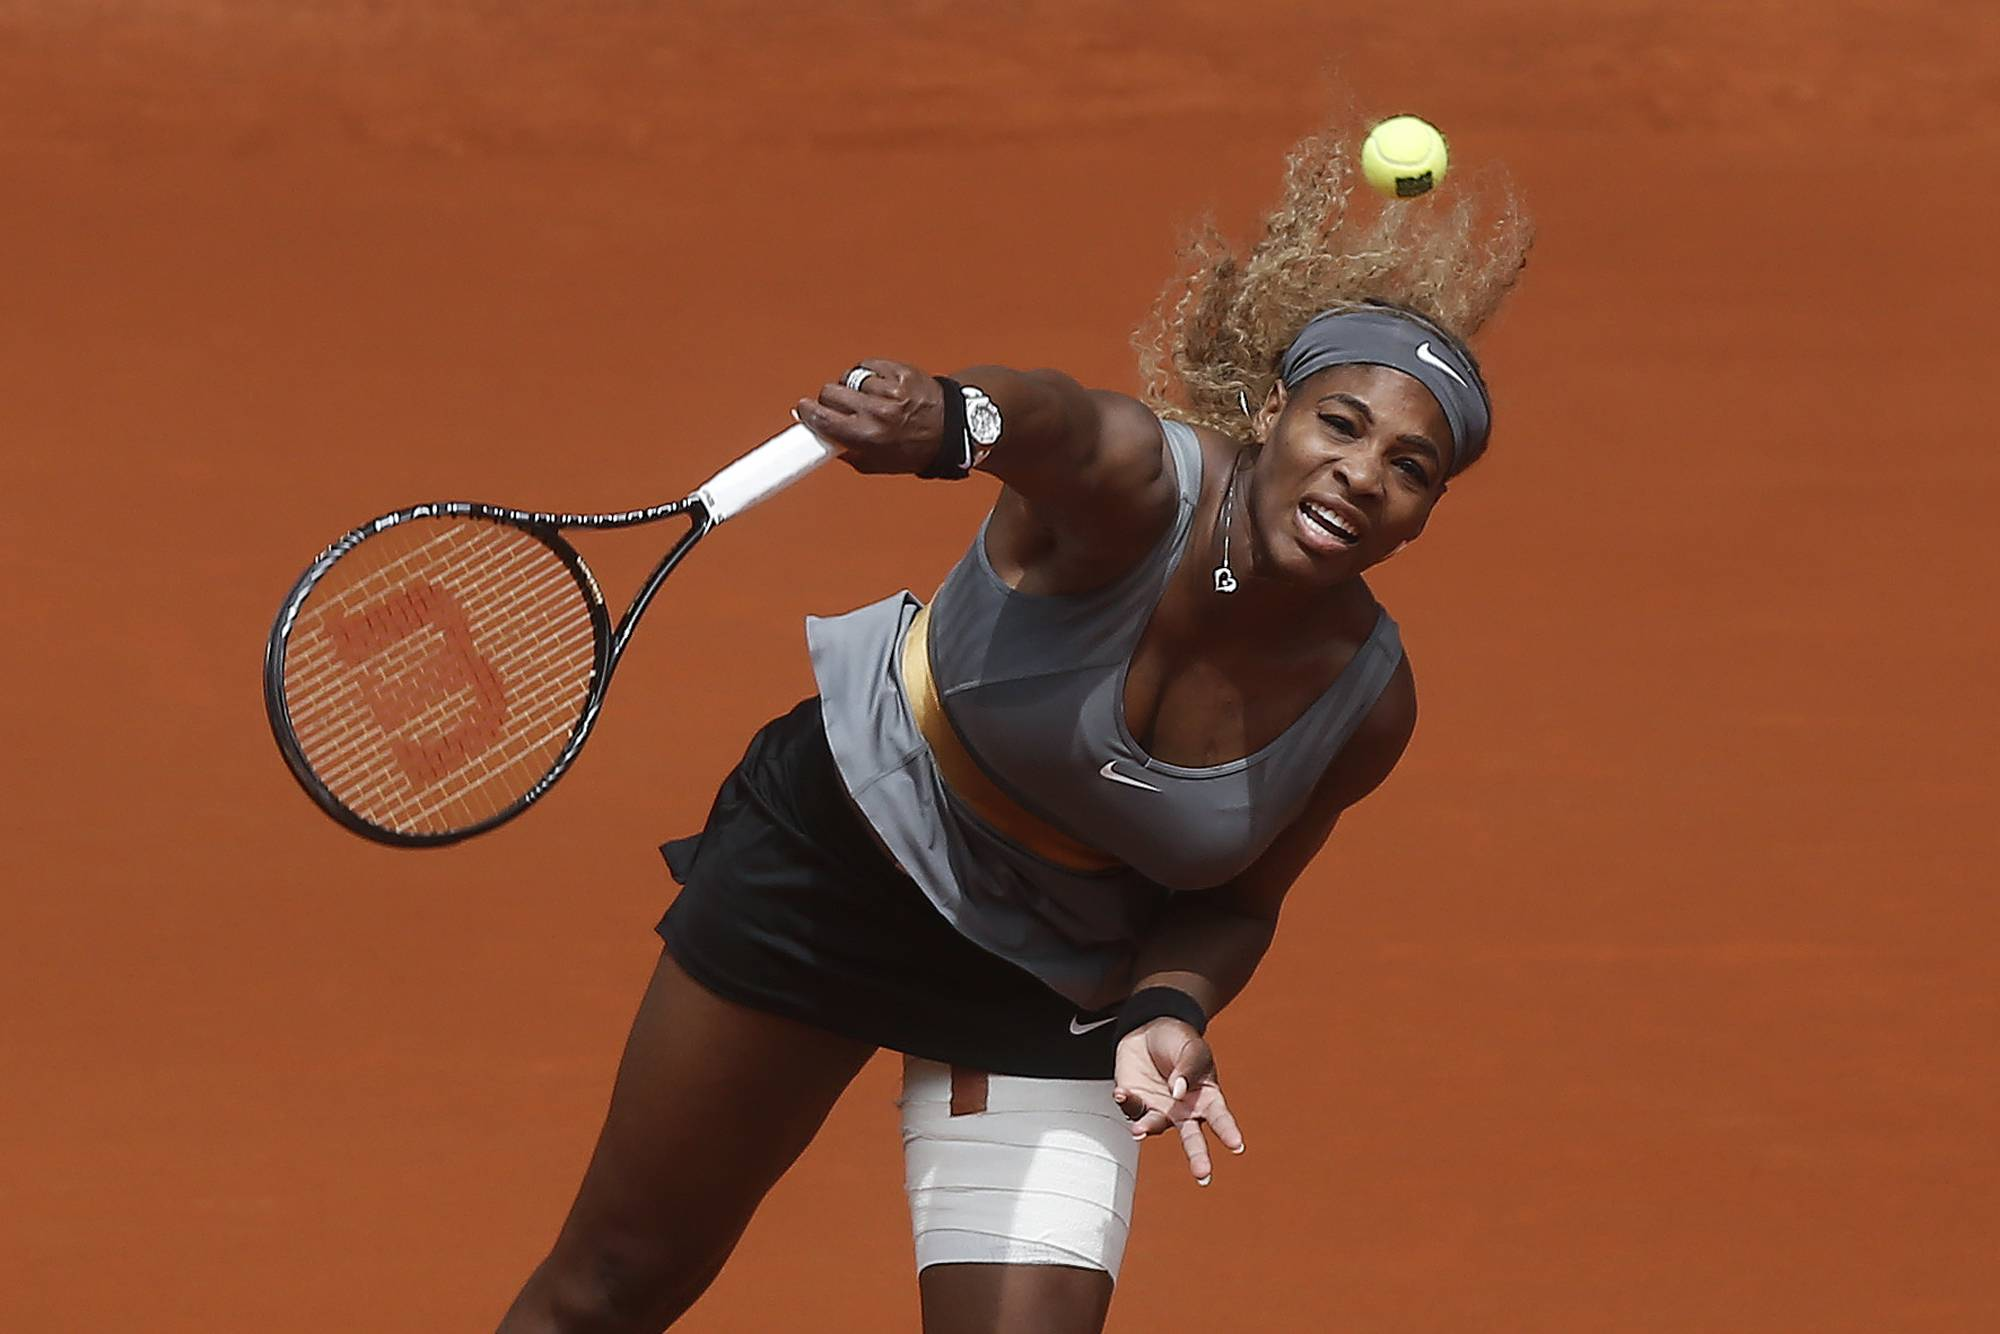 Serena Williams from US serves during a Madrid Open tennis tournament match against Shuai Peng from China, in Madrid, Spain, Wednesday, May 7, 2014.